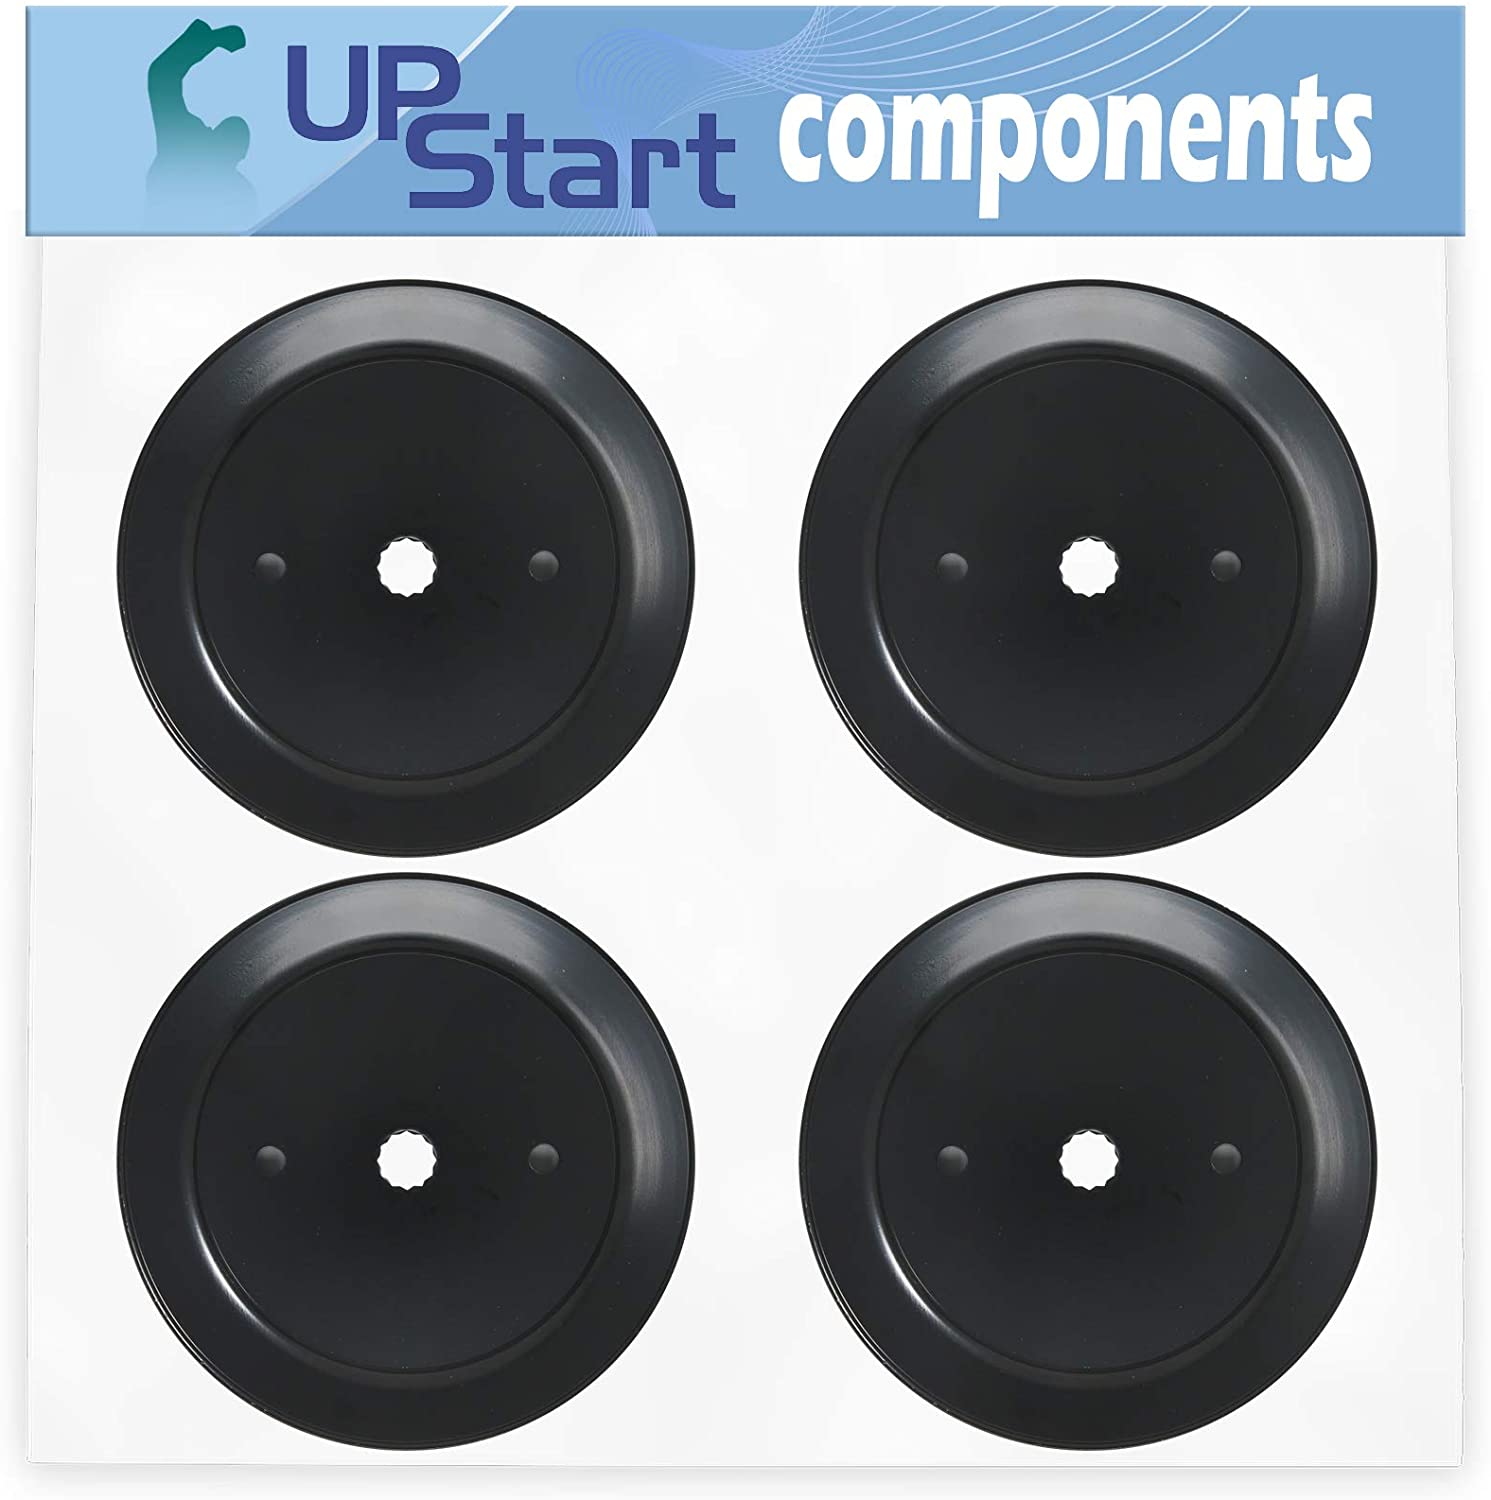 UpStart Components 4-Pack 532195945 Spindle Pulley Replacement for Craftsman 917T287121 Lawn Tractor - Compatible with 195945 197473 Mandrel Pulley